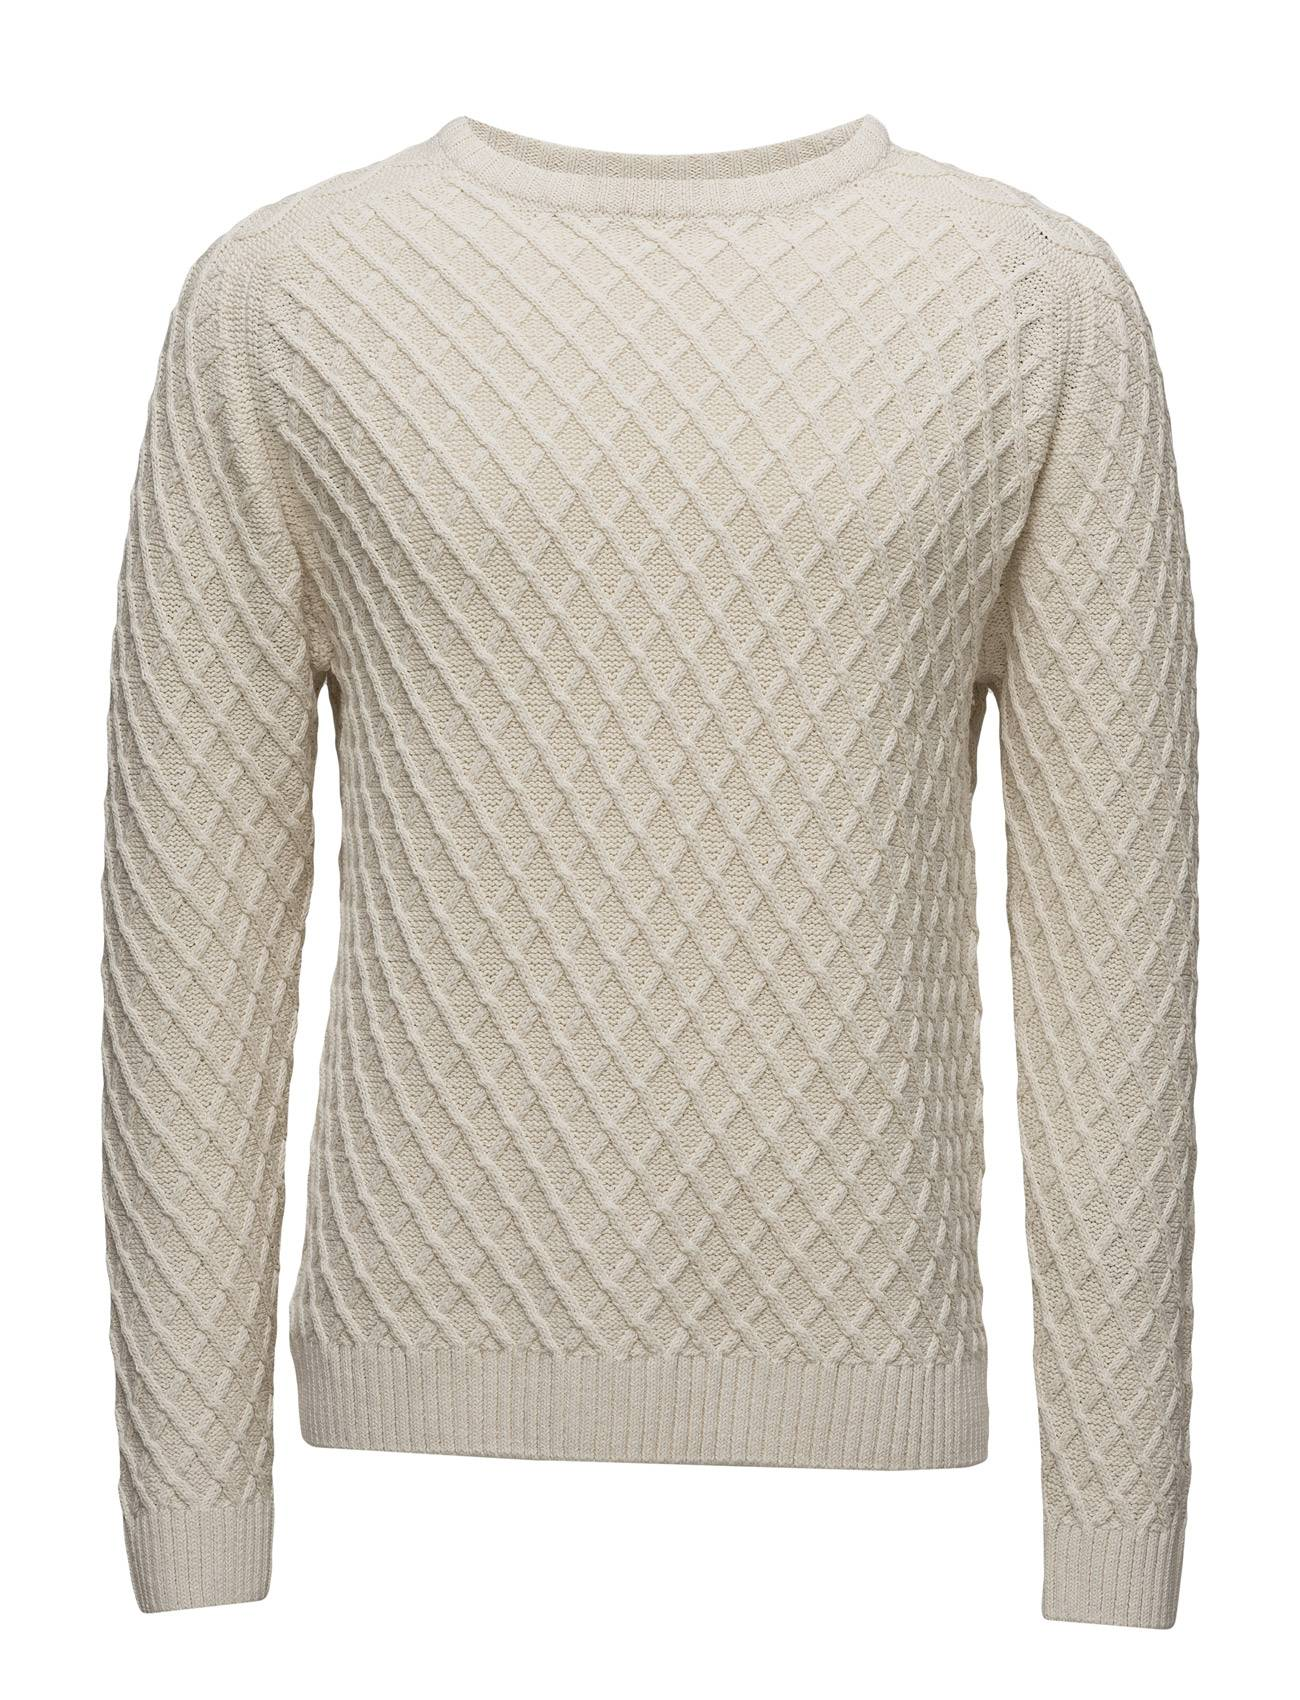 Lexington Company Huxley Sweater